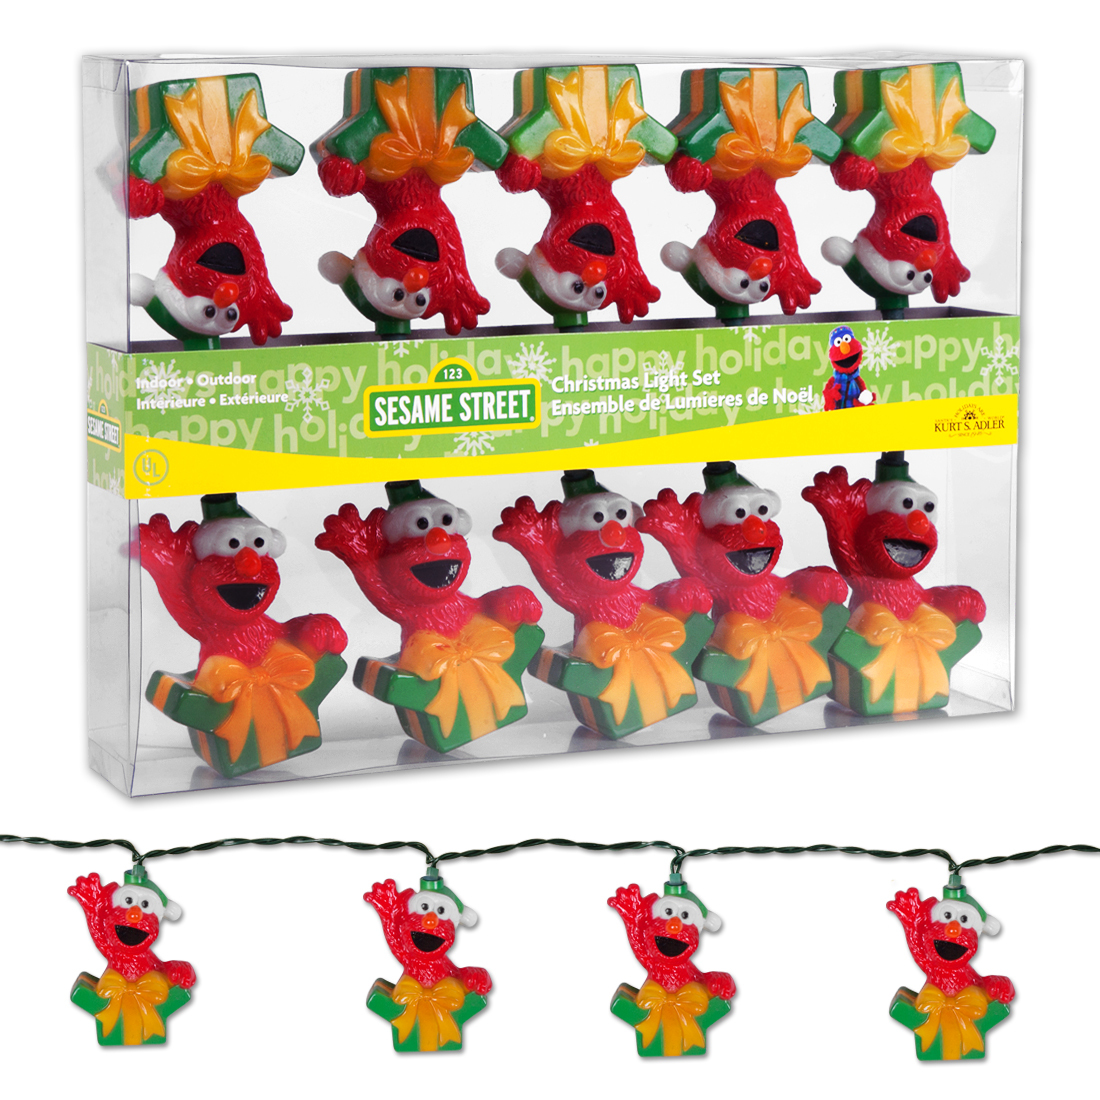 Sesame Street Elmo Light Set